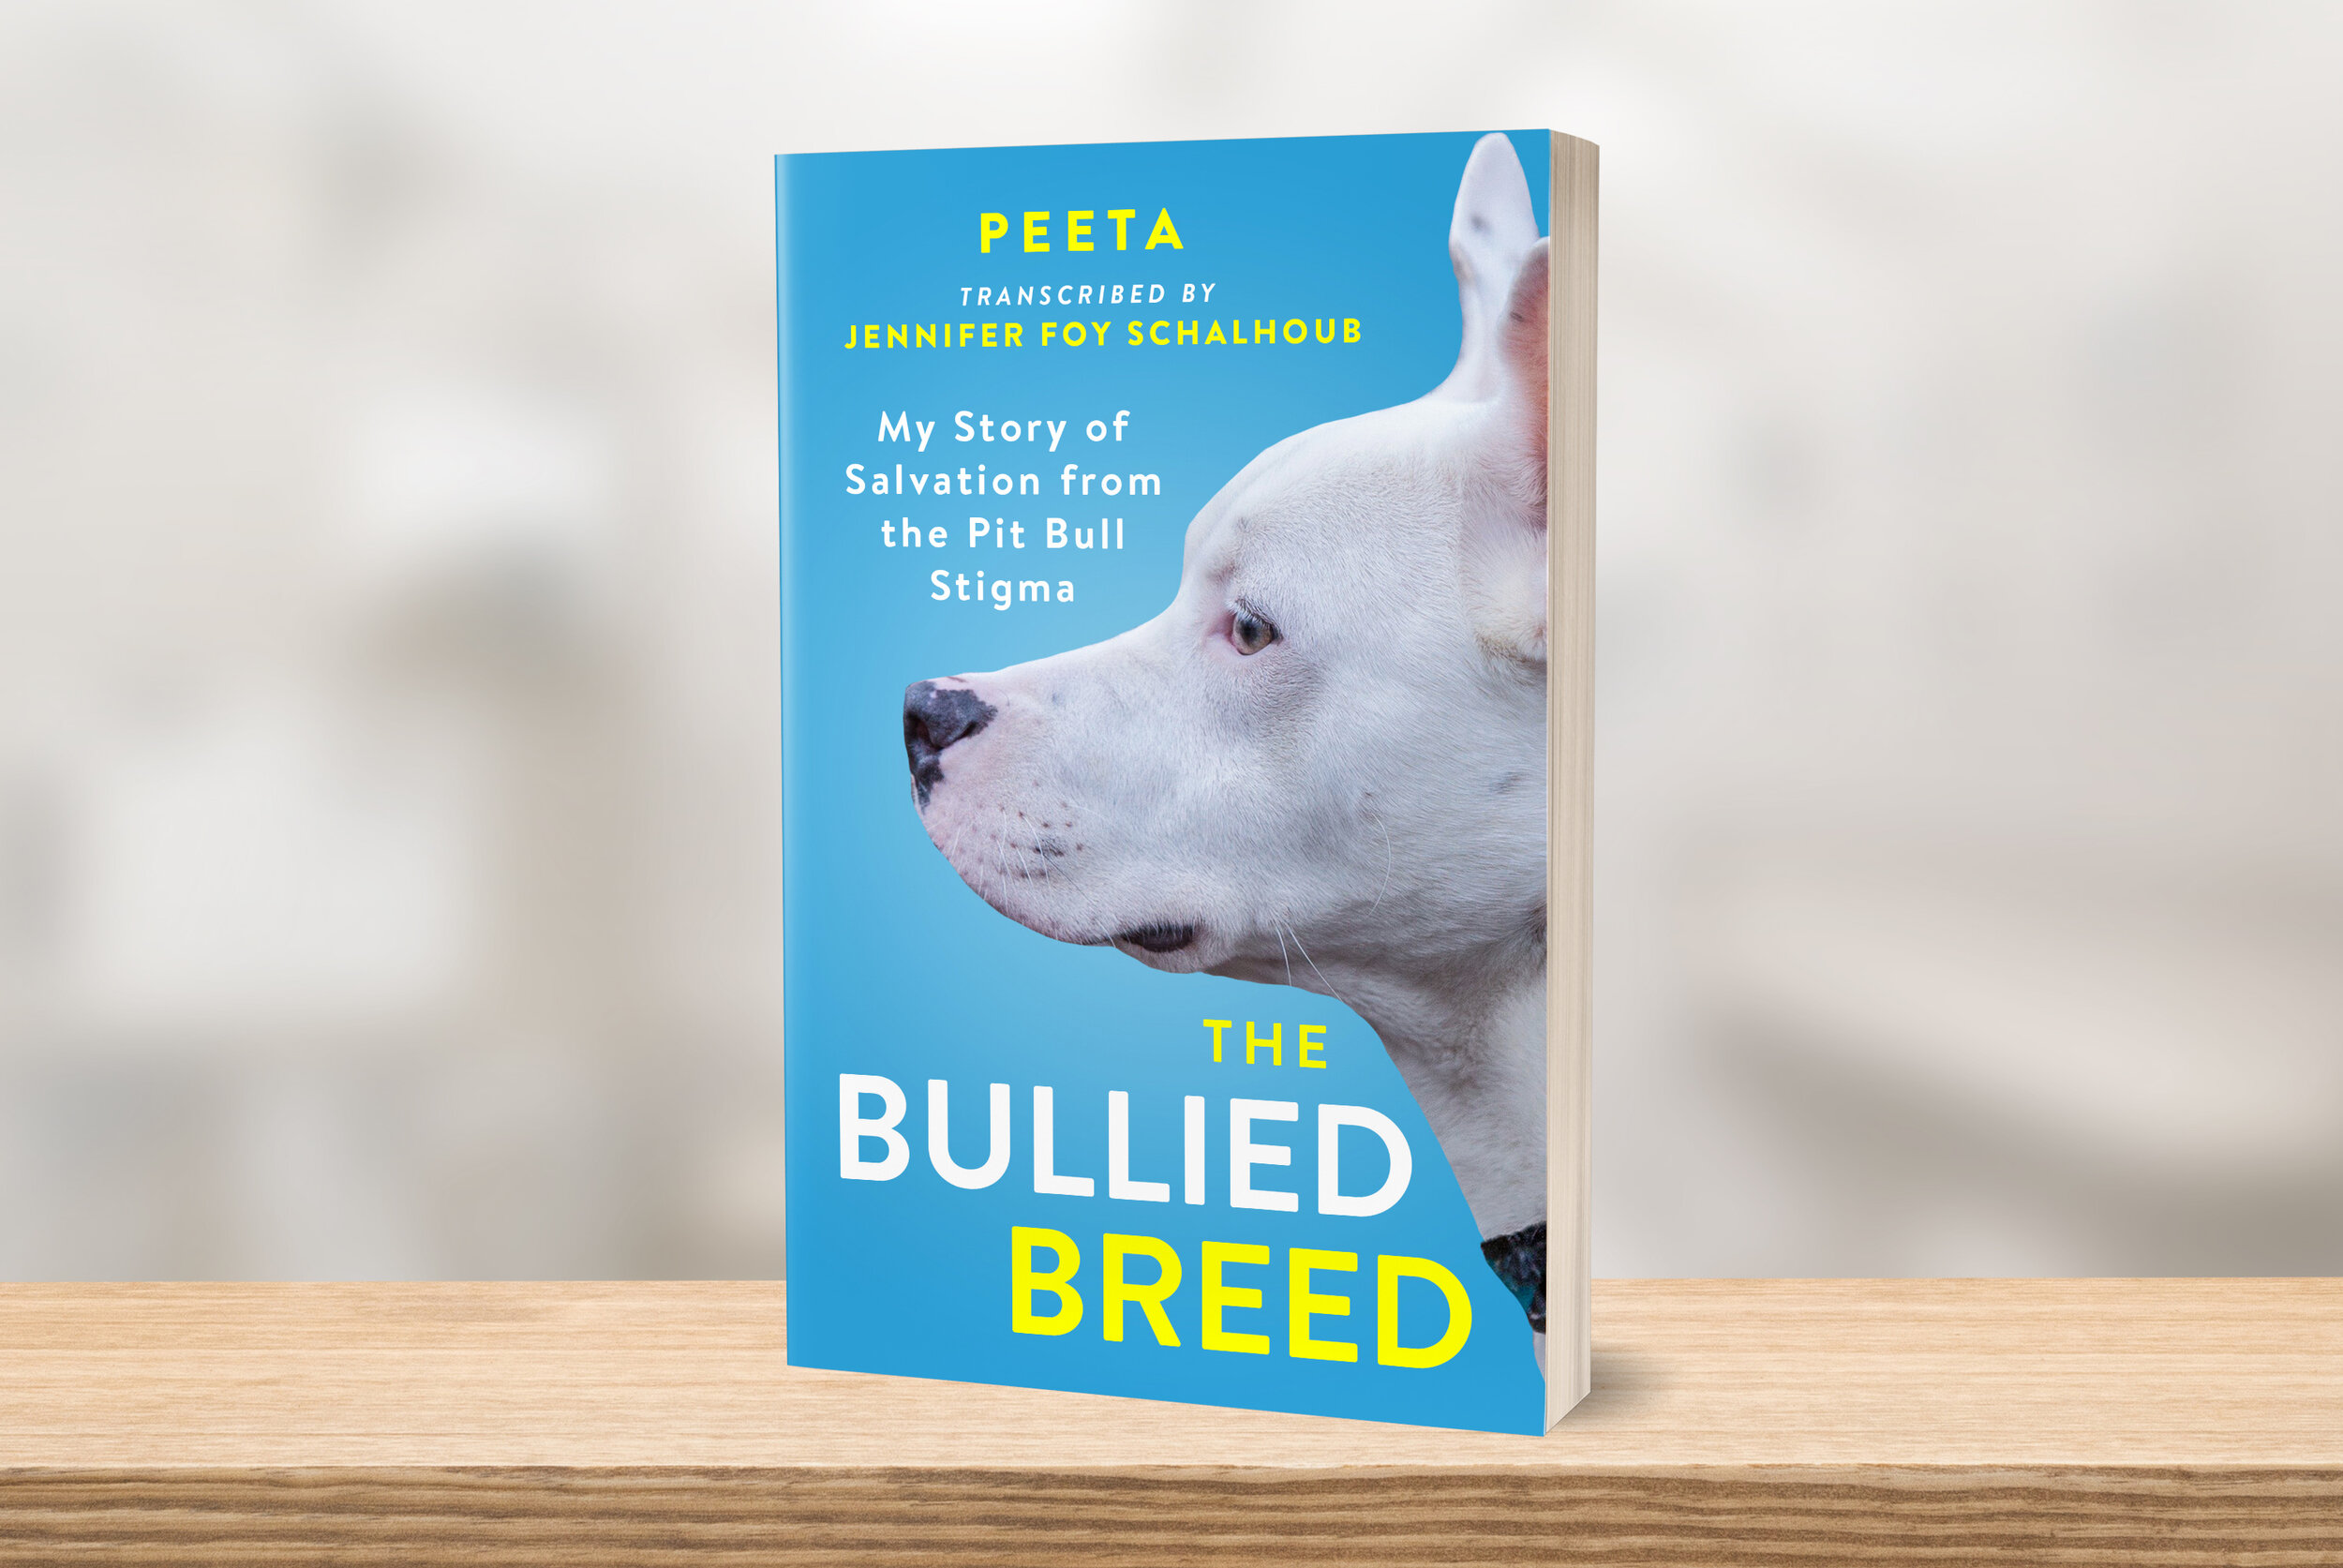 The Bullied Breed: My Story of Salvation from the Pit Bull Stigma